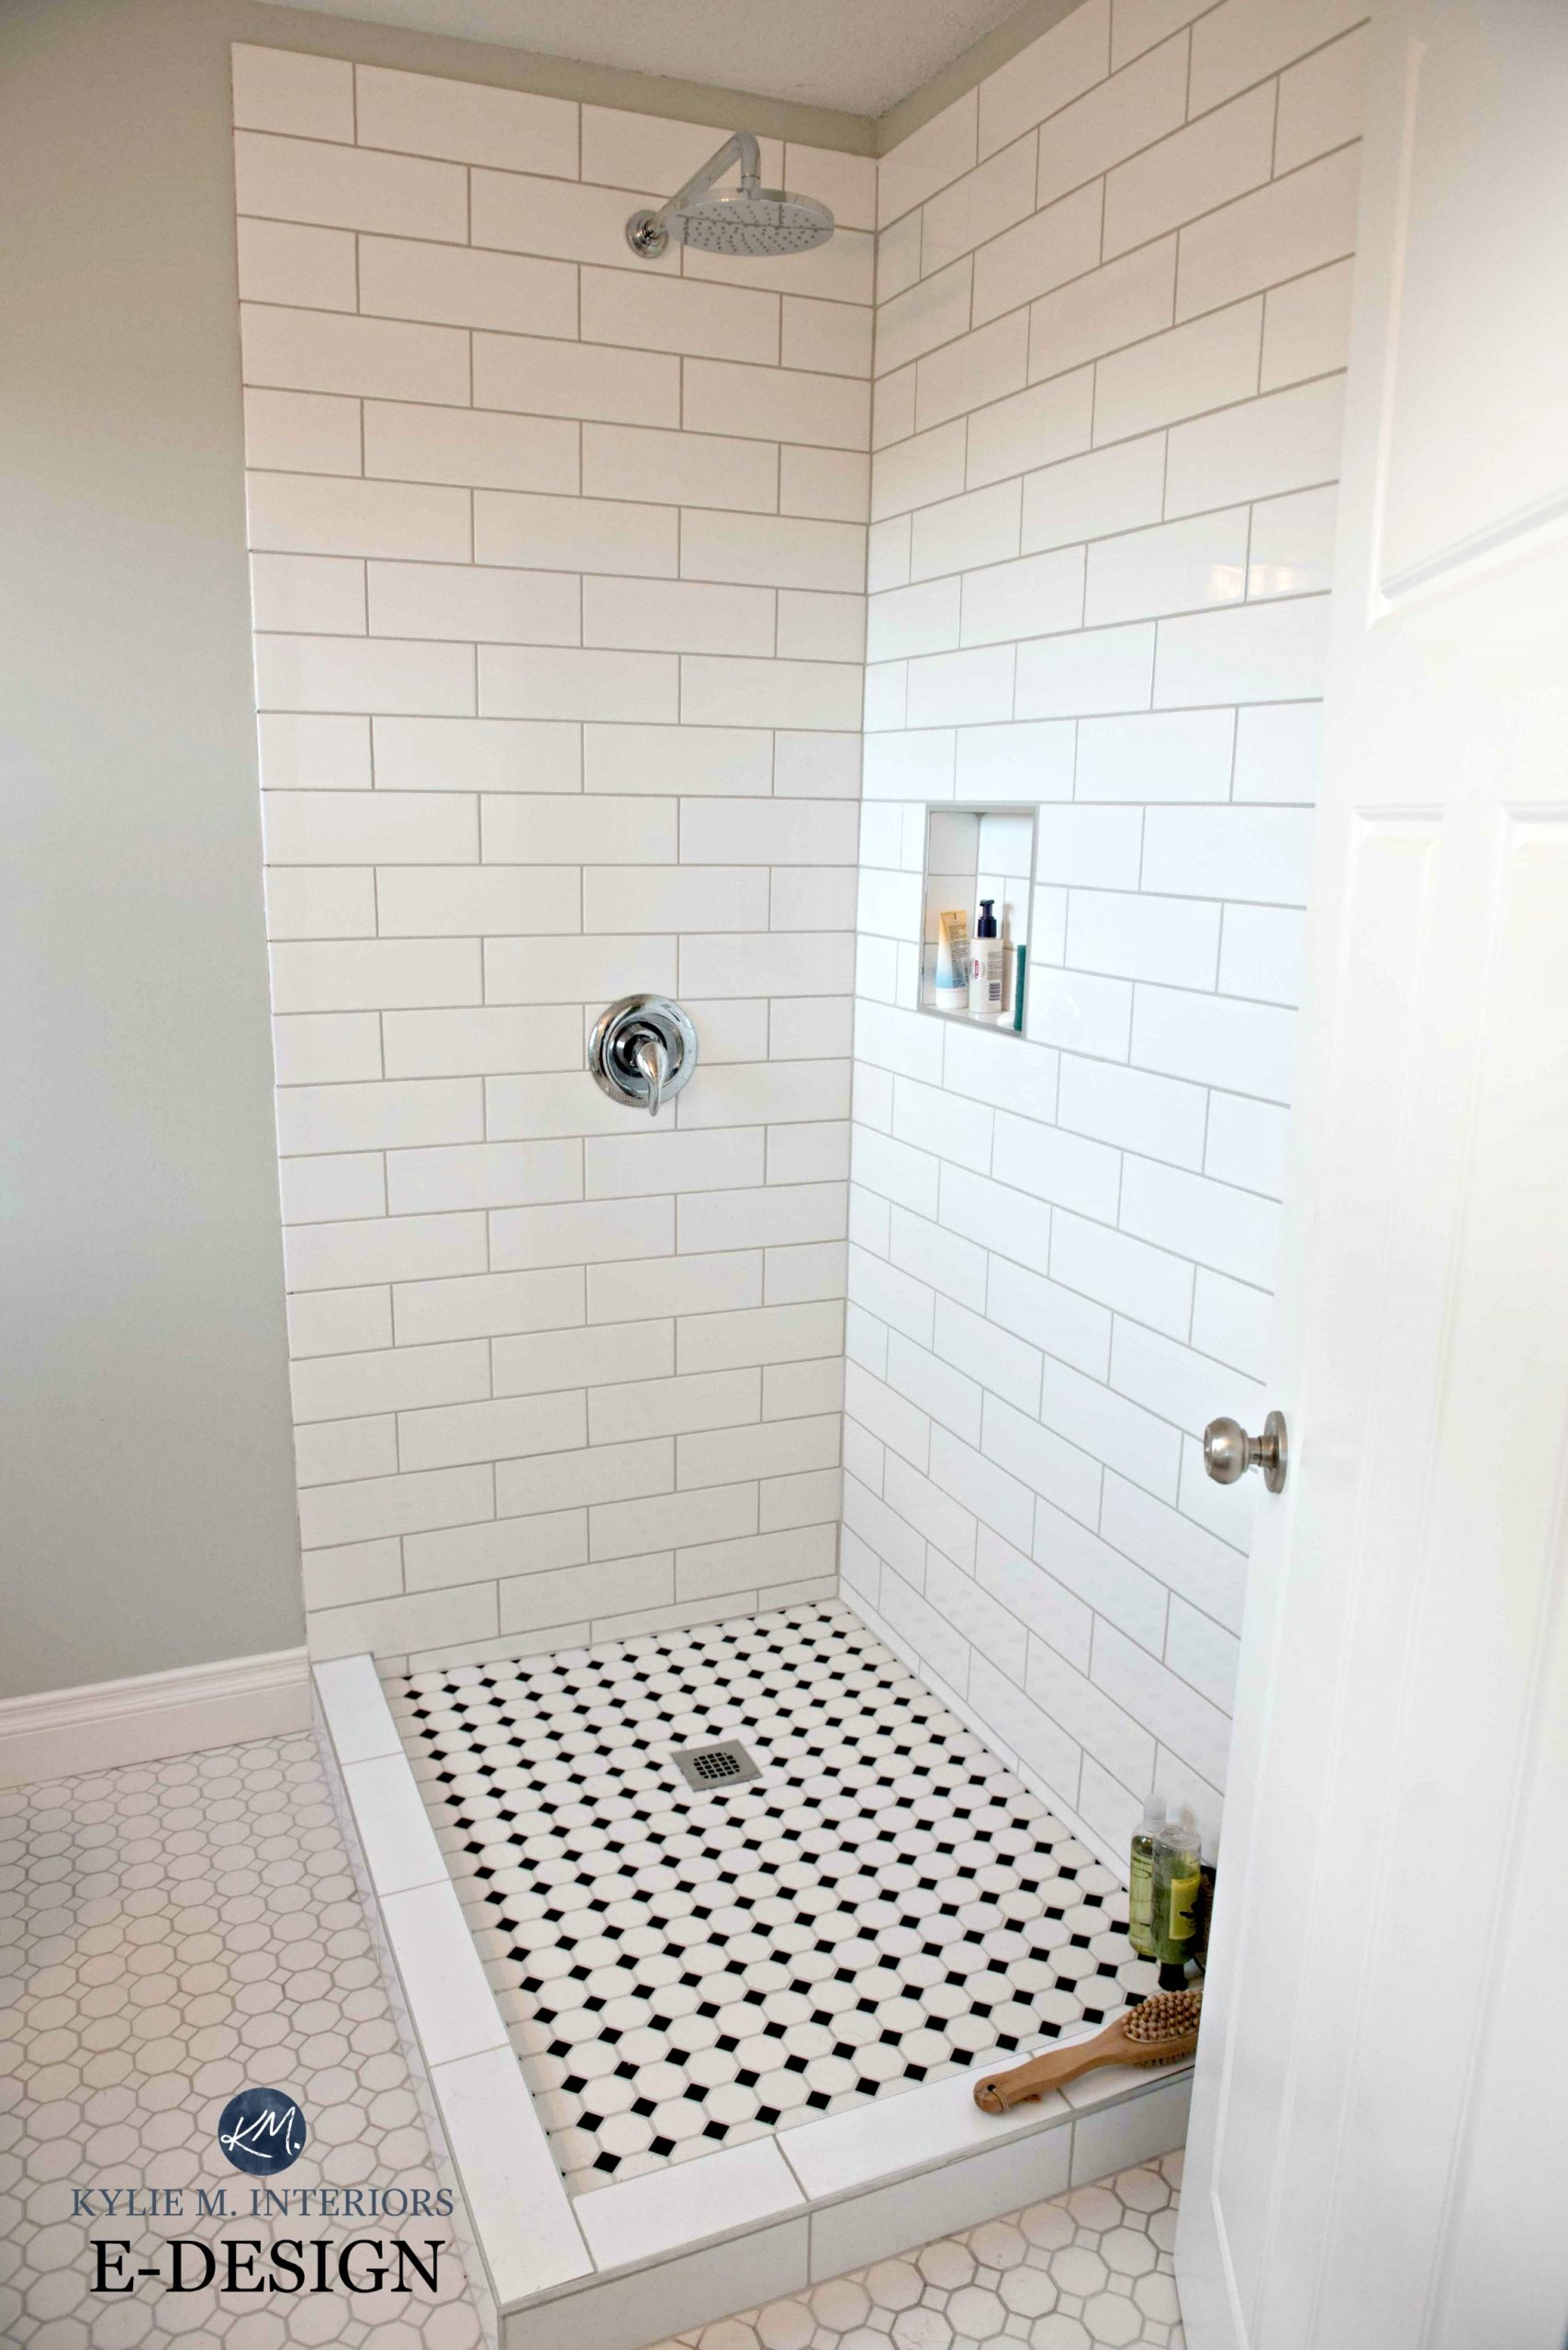 small bathroom shower, subway tile, hexagon and benjamin moore gray cashmere paint colour. kylie